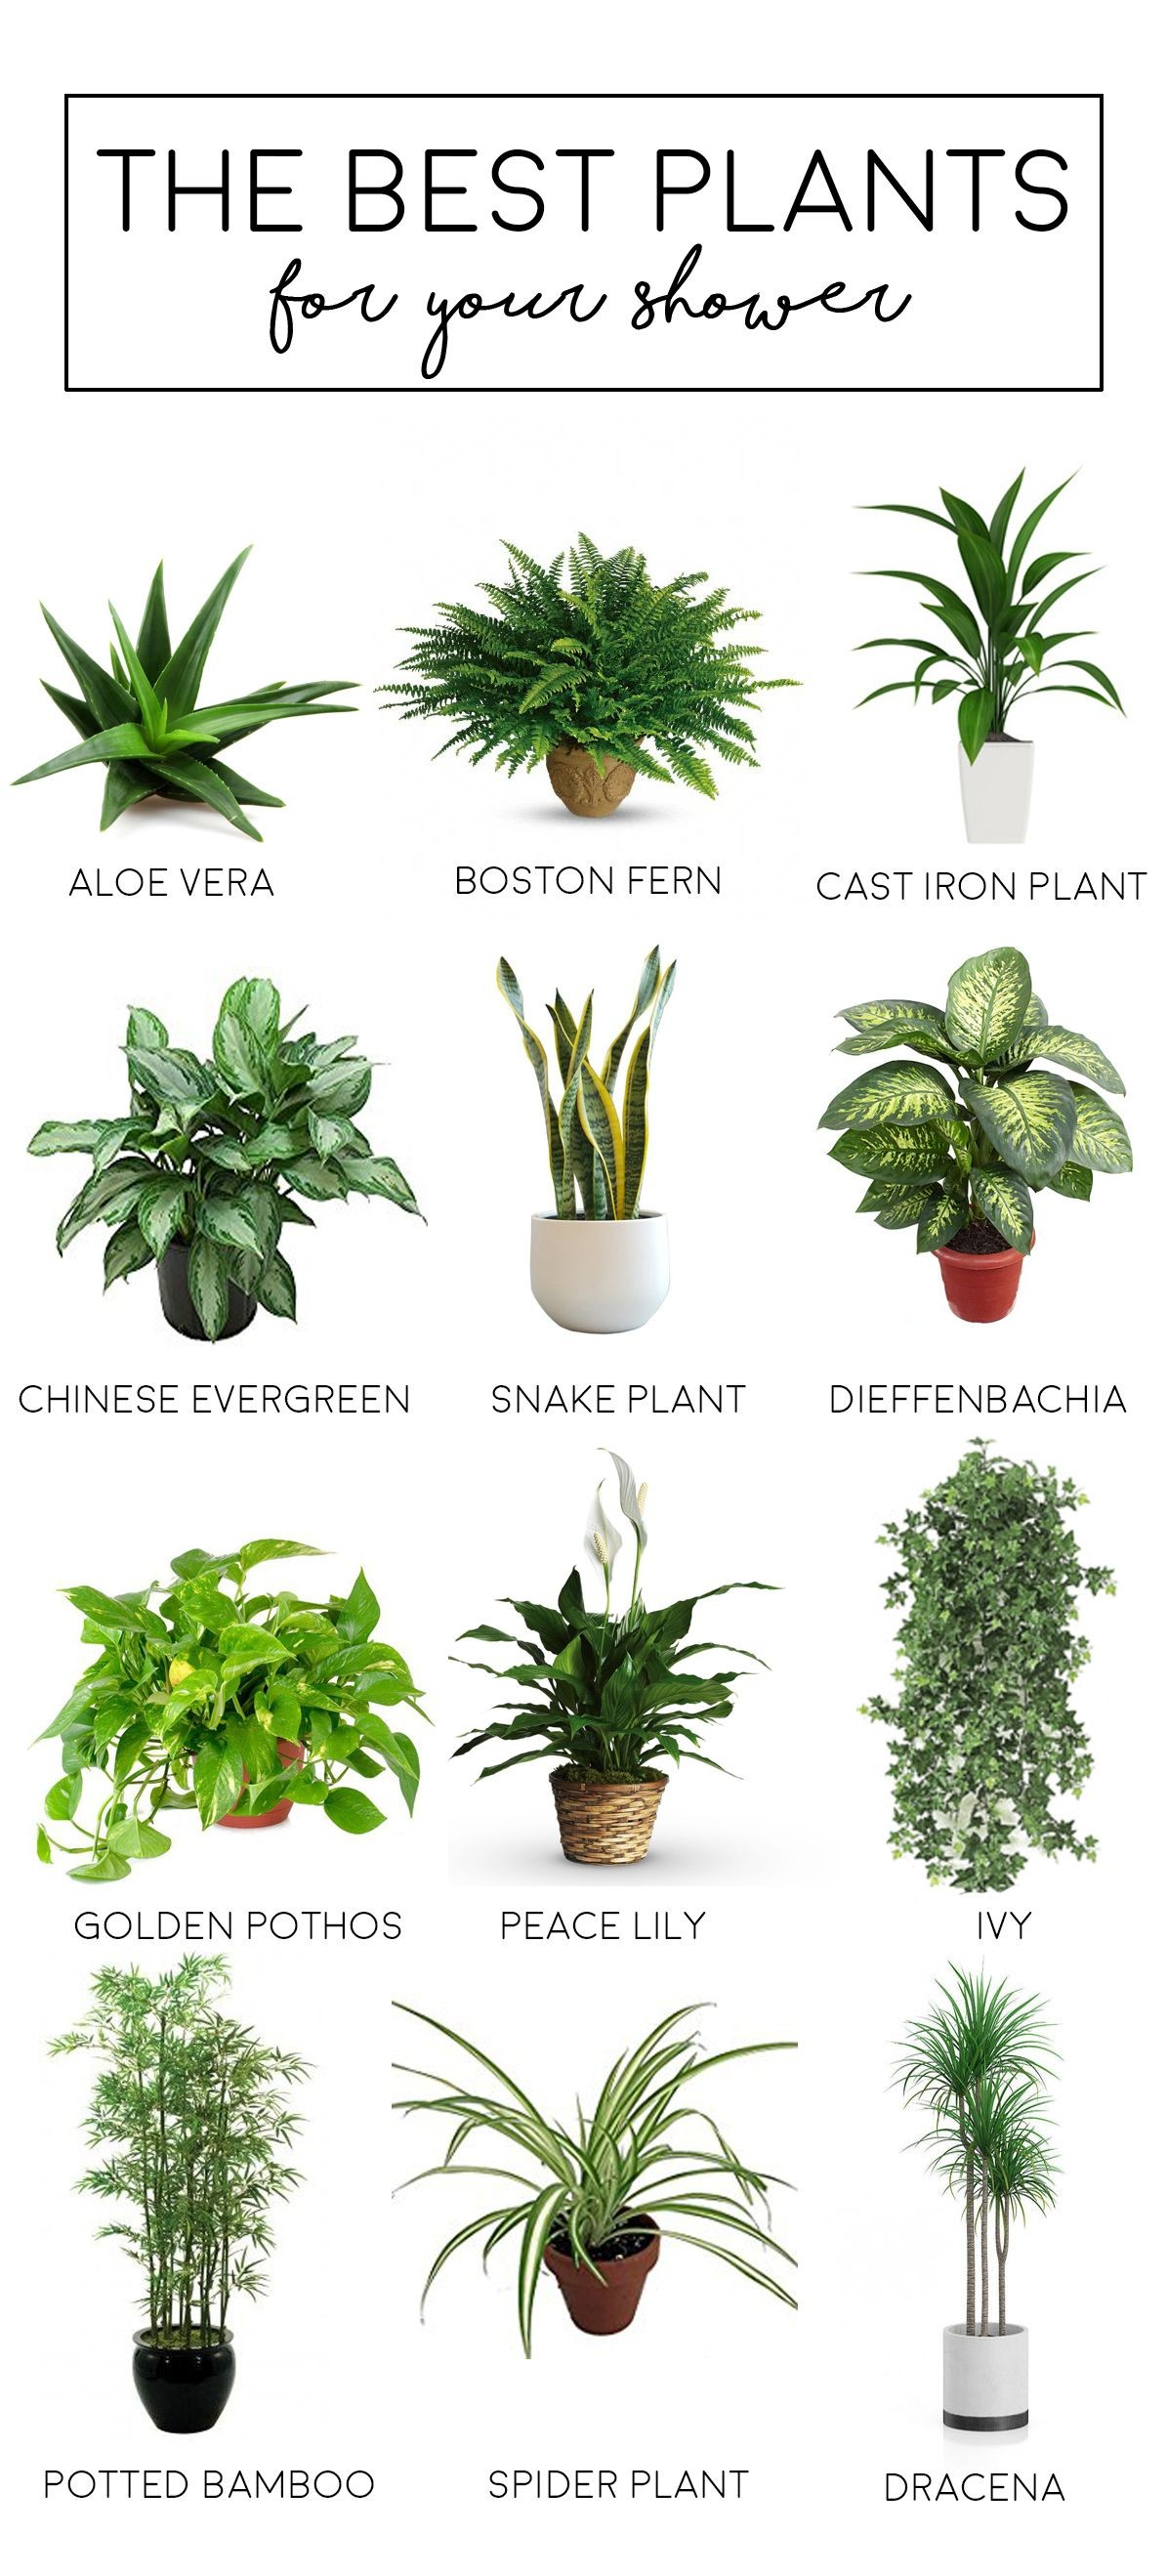 Good Plants for Bathroom Inspirational Blog Inspiration